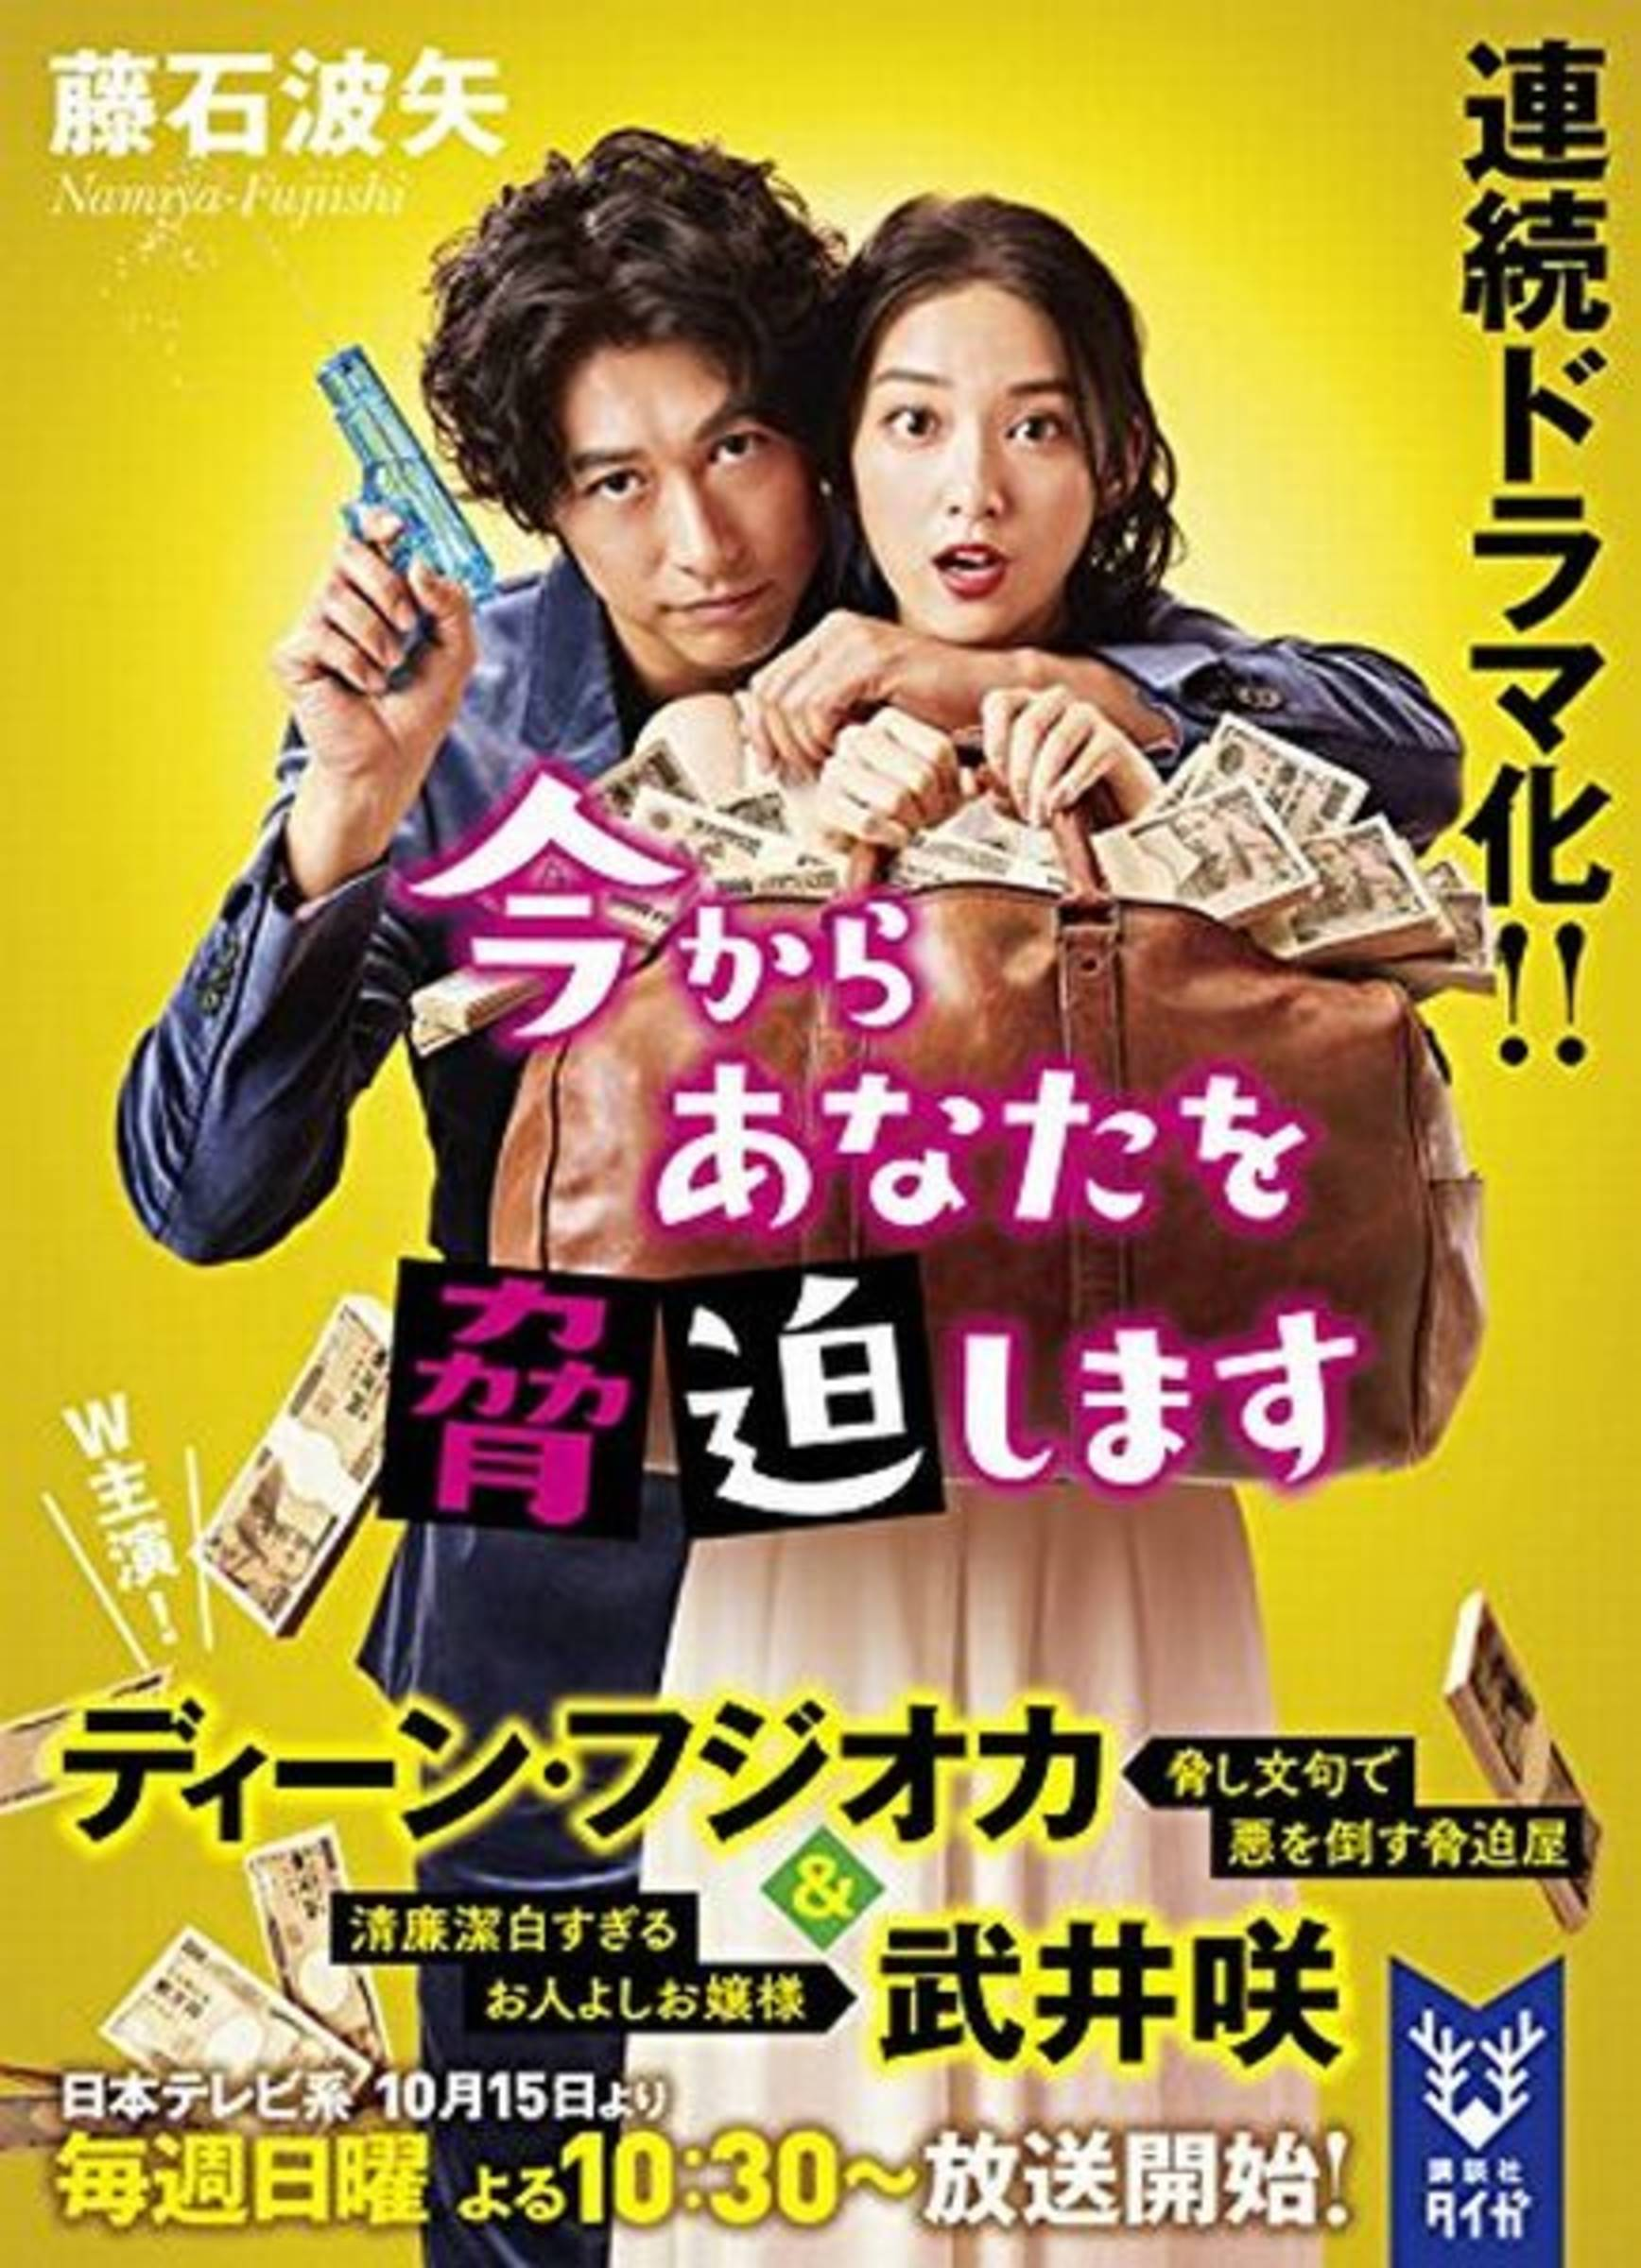 Ima kara Anata wo Kyouhaku Shimasu (2017) / May I Blackmail You? / 今からあなたを脅迫します